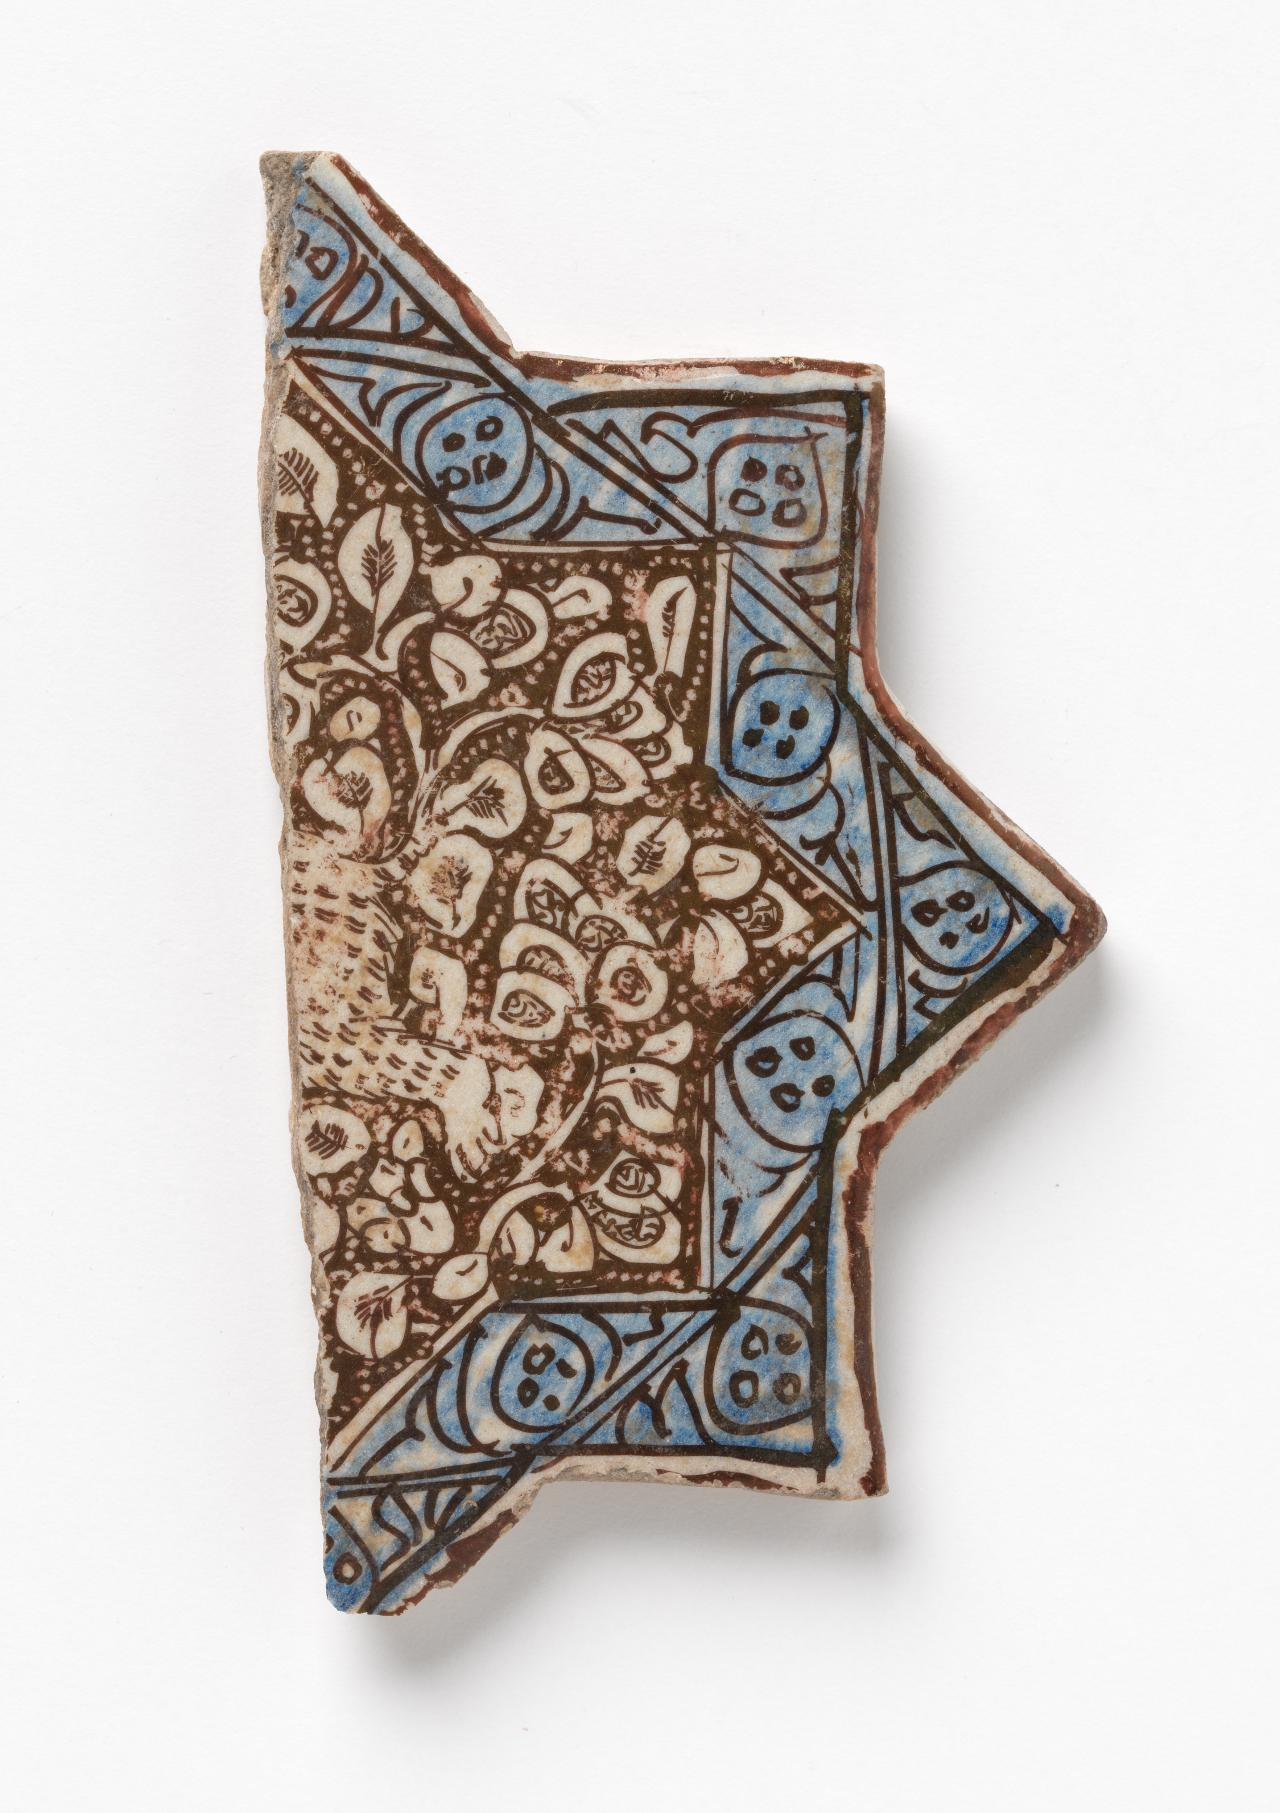 Fragment of tile